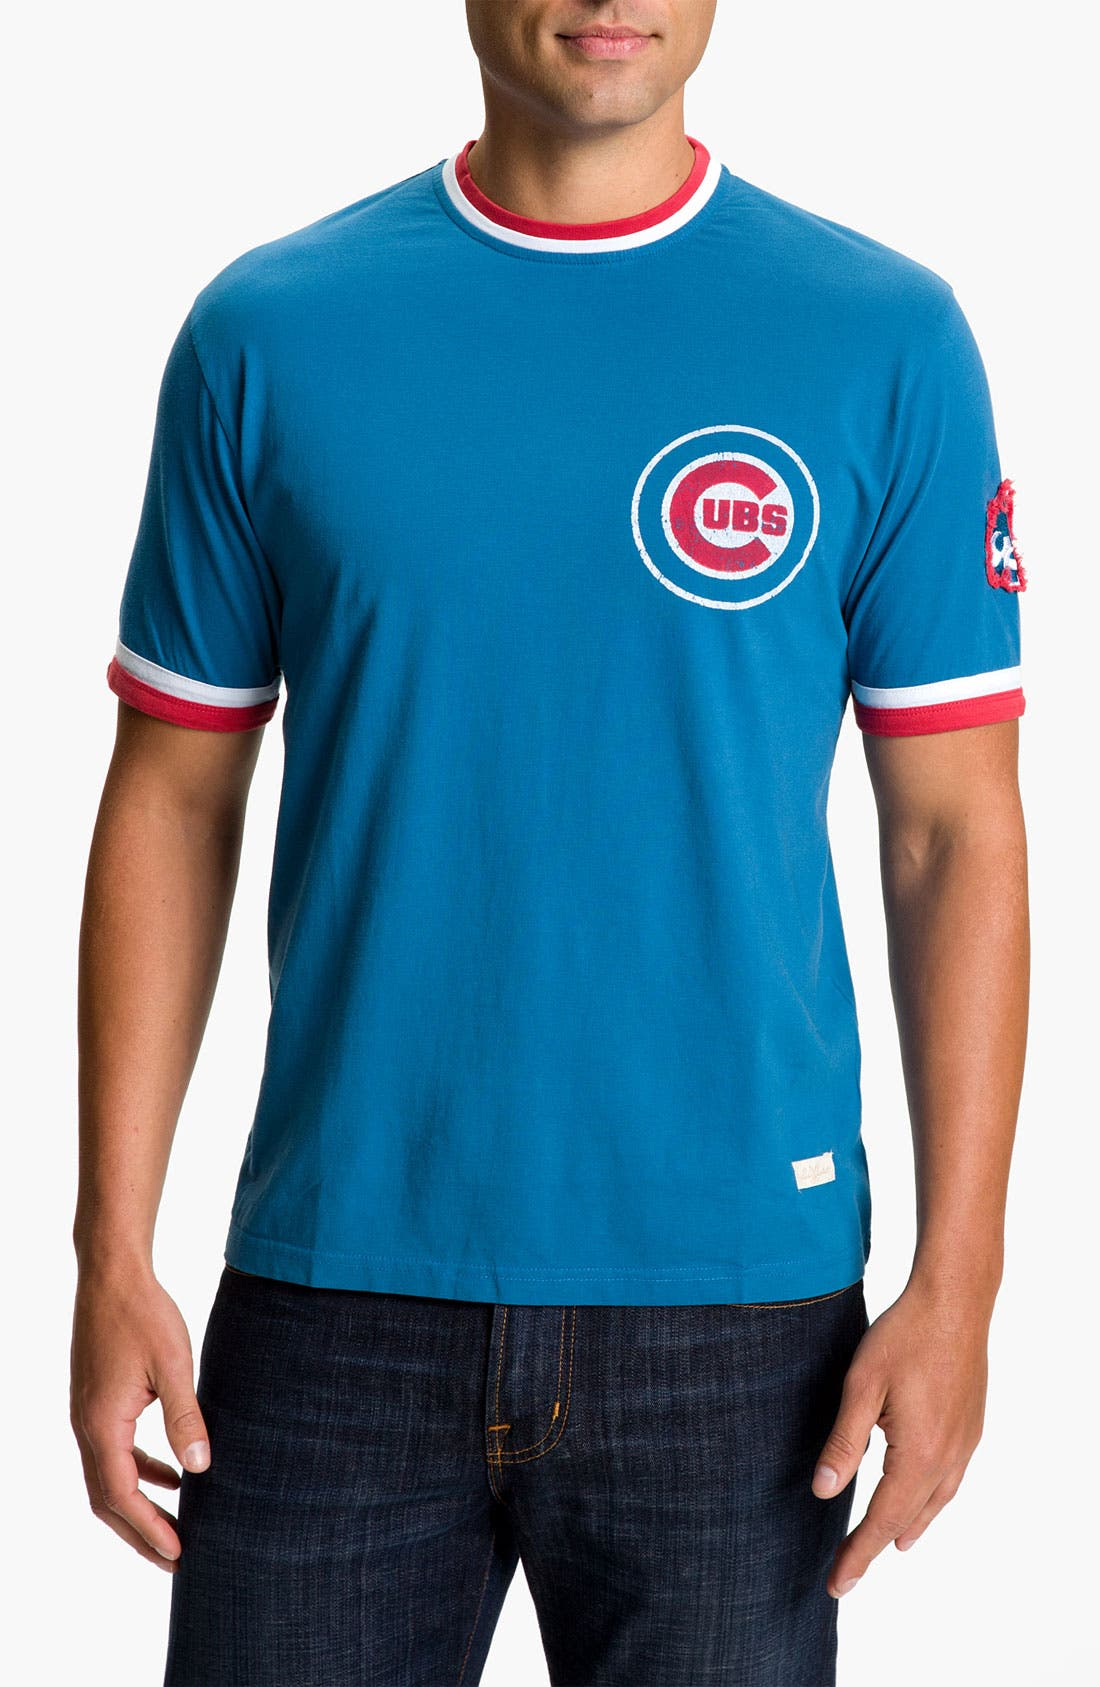 Red Jacket 'Cubs - Remote Control' T-Shirt